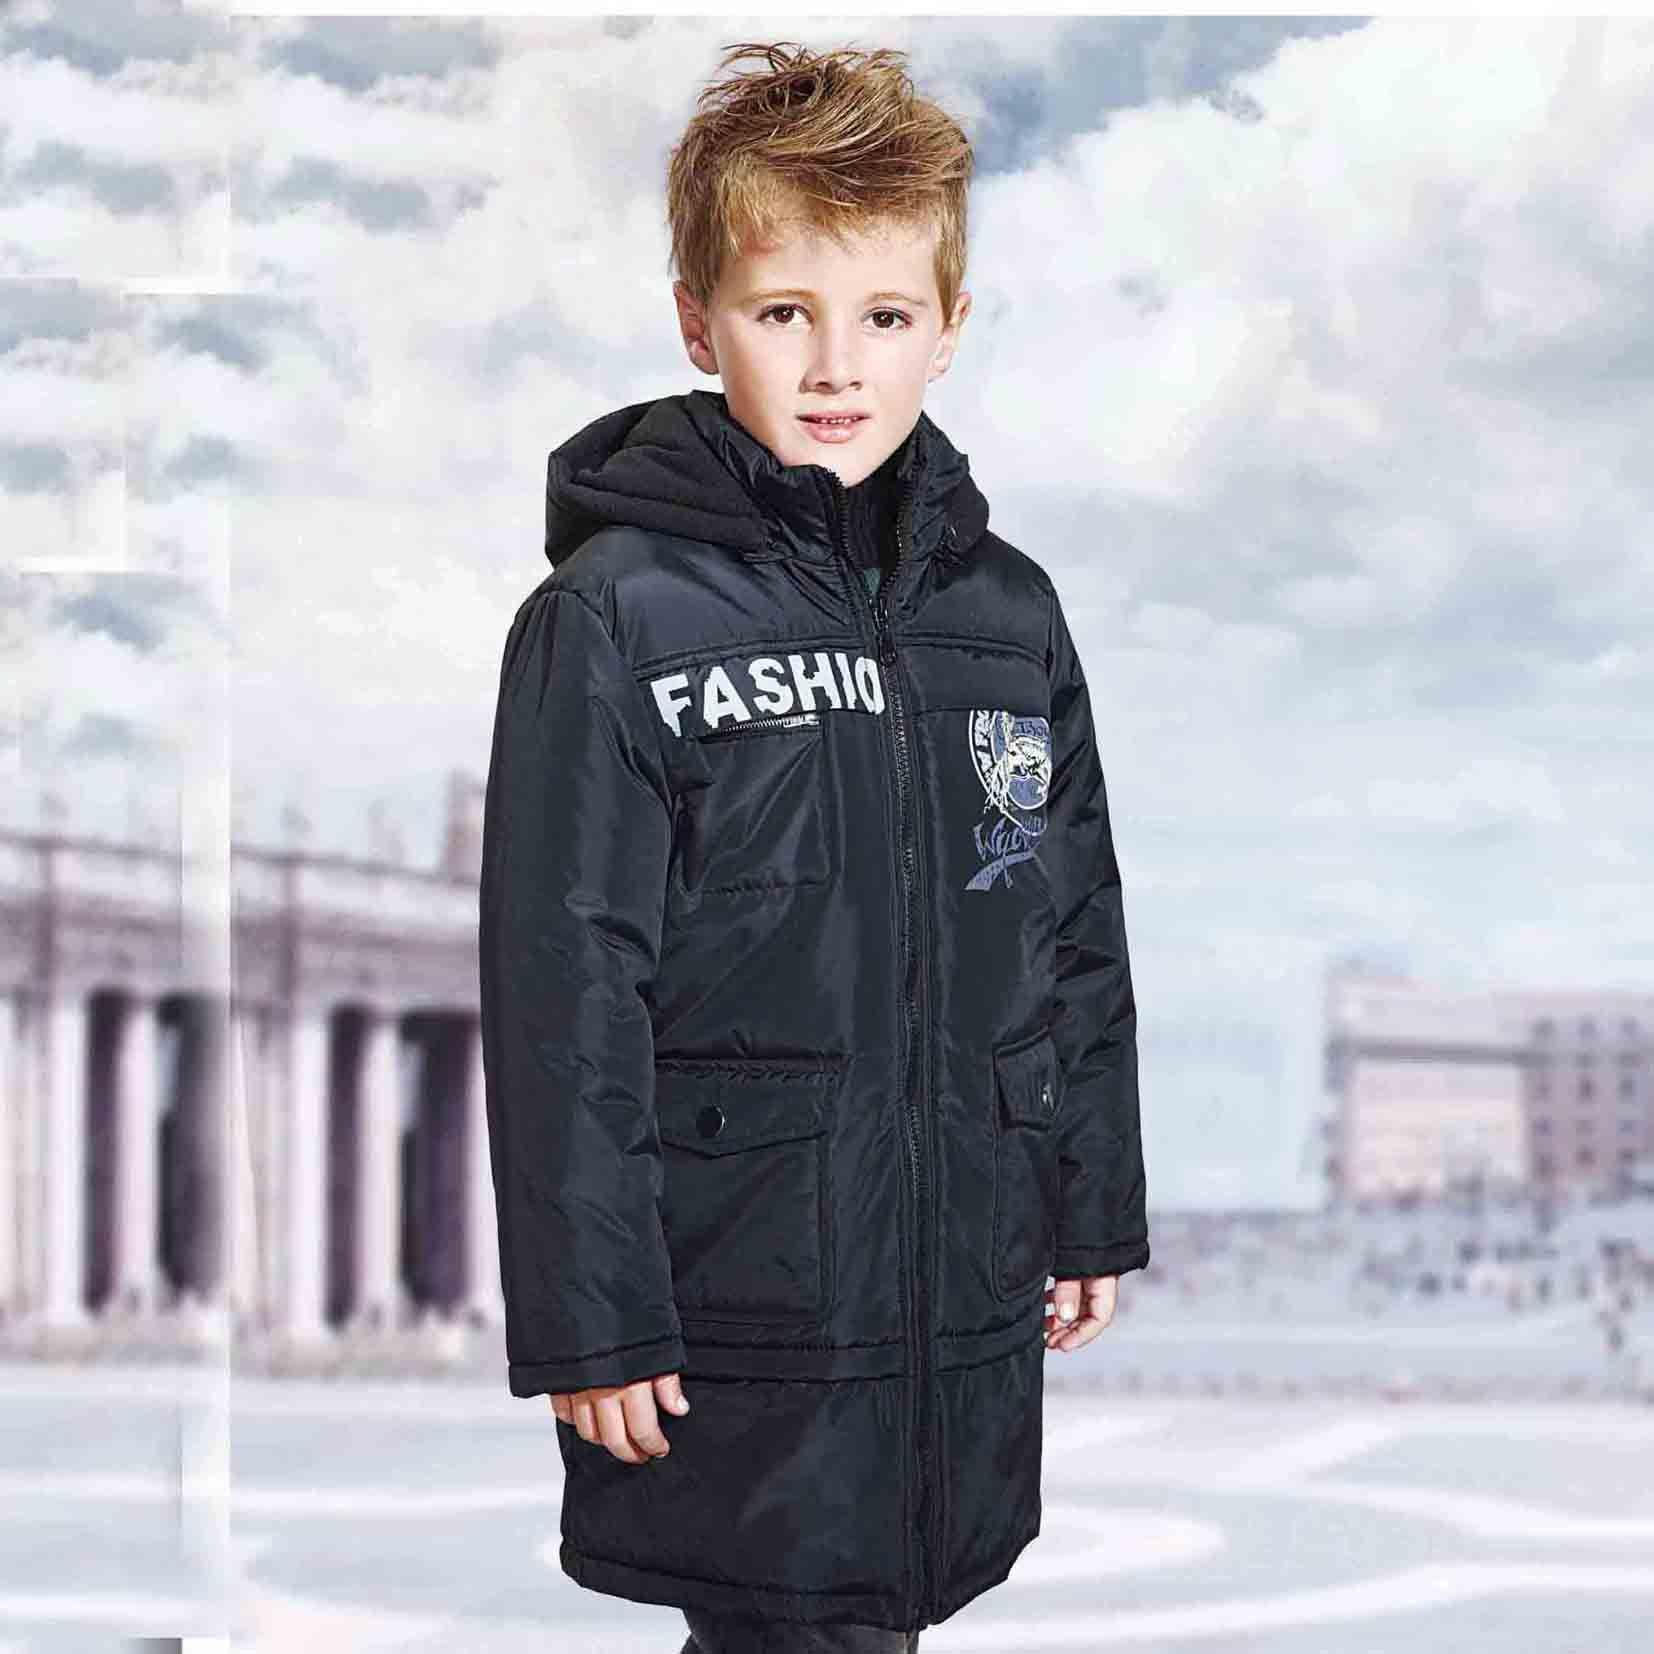 New Arrived Fashion Children S Boy Coat Helps Your Little Boy Get Through Hard And Cold Winter Days Boys Coat Kids Fashion Boy Personalized Jacket [ 1654 x 1654 Pixel ]